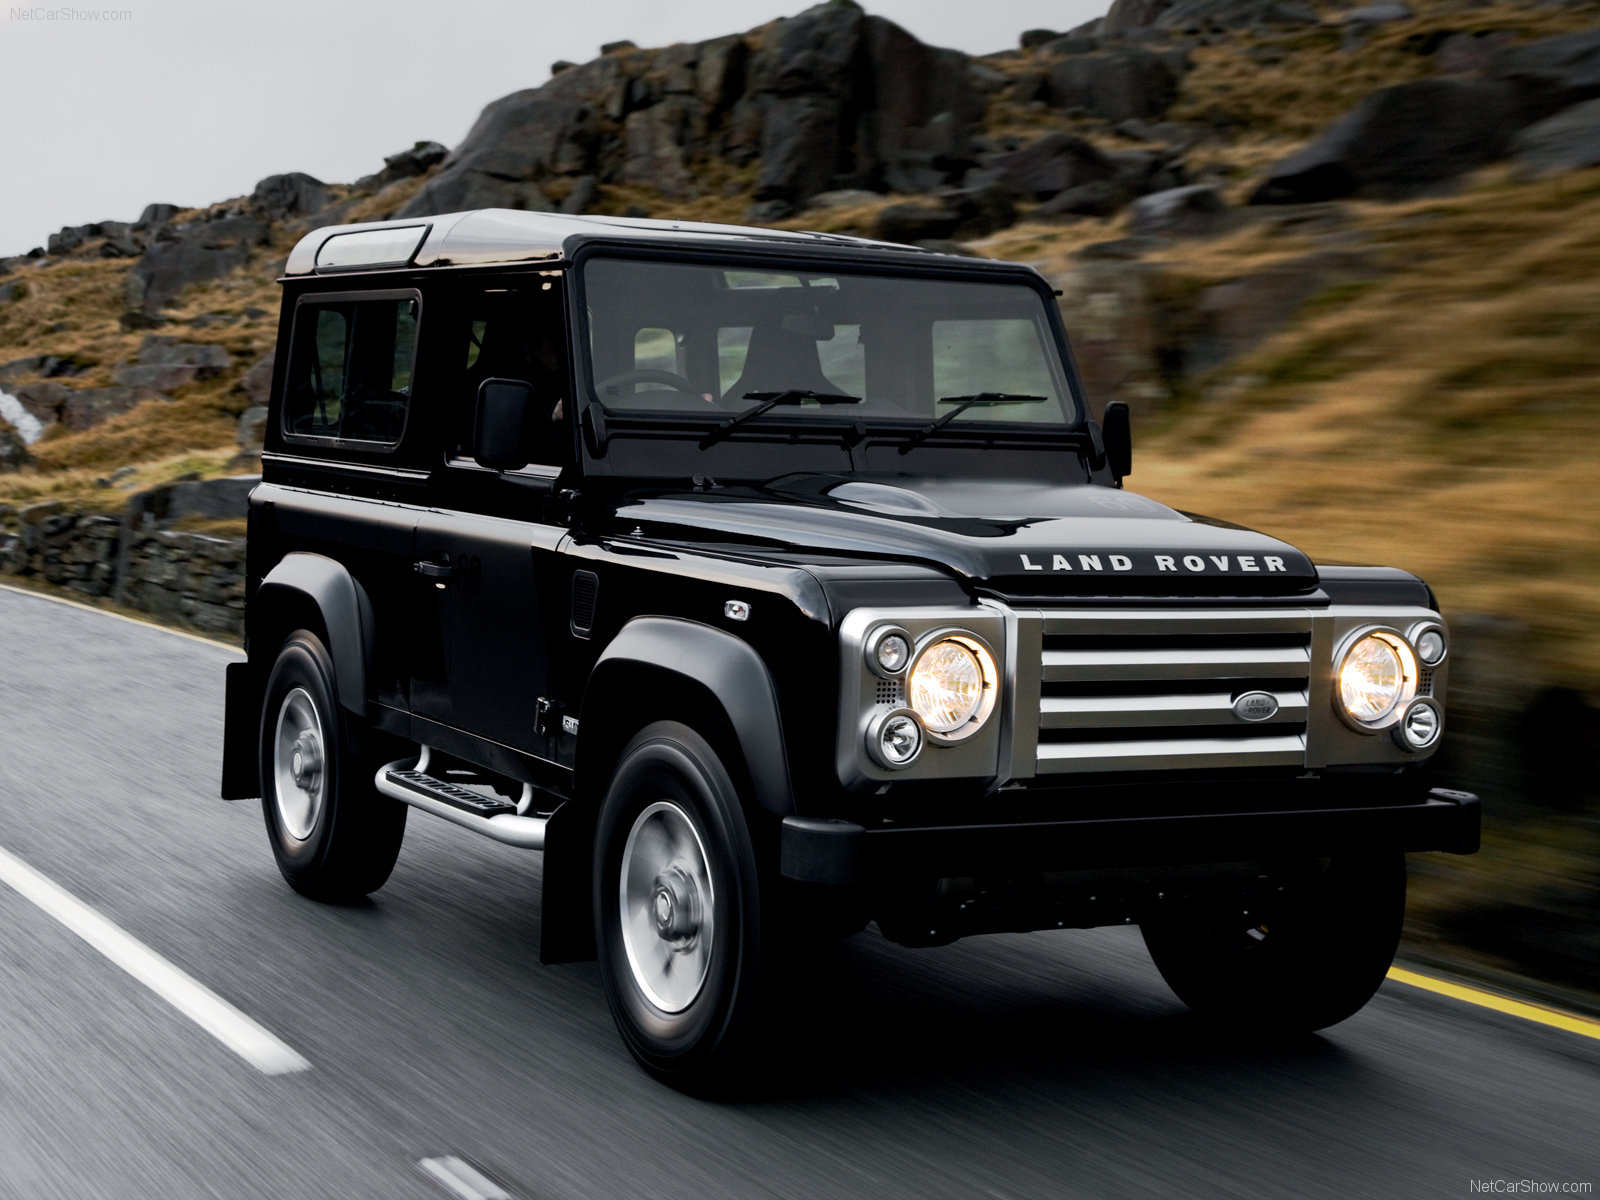 land rover Defender makes a terrible mistake #5